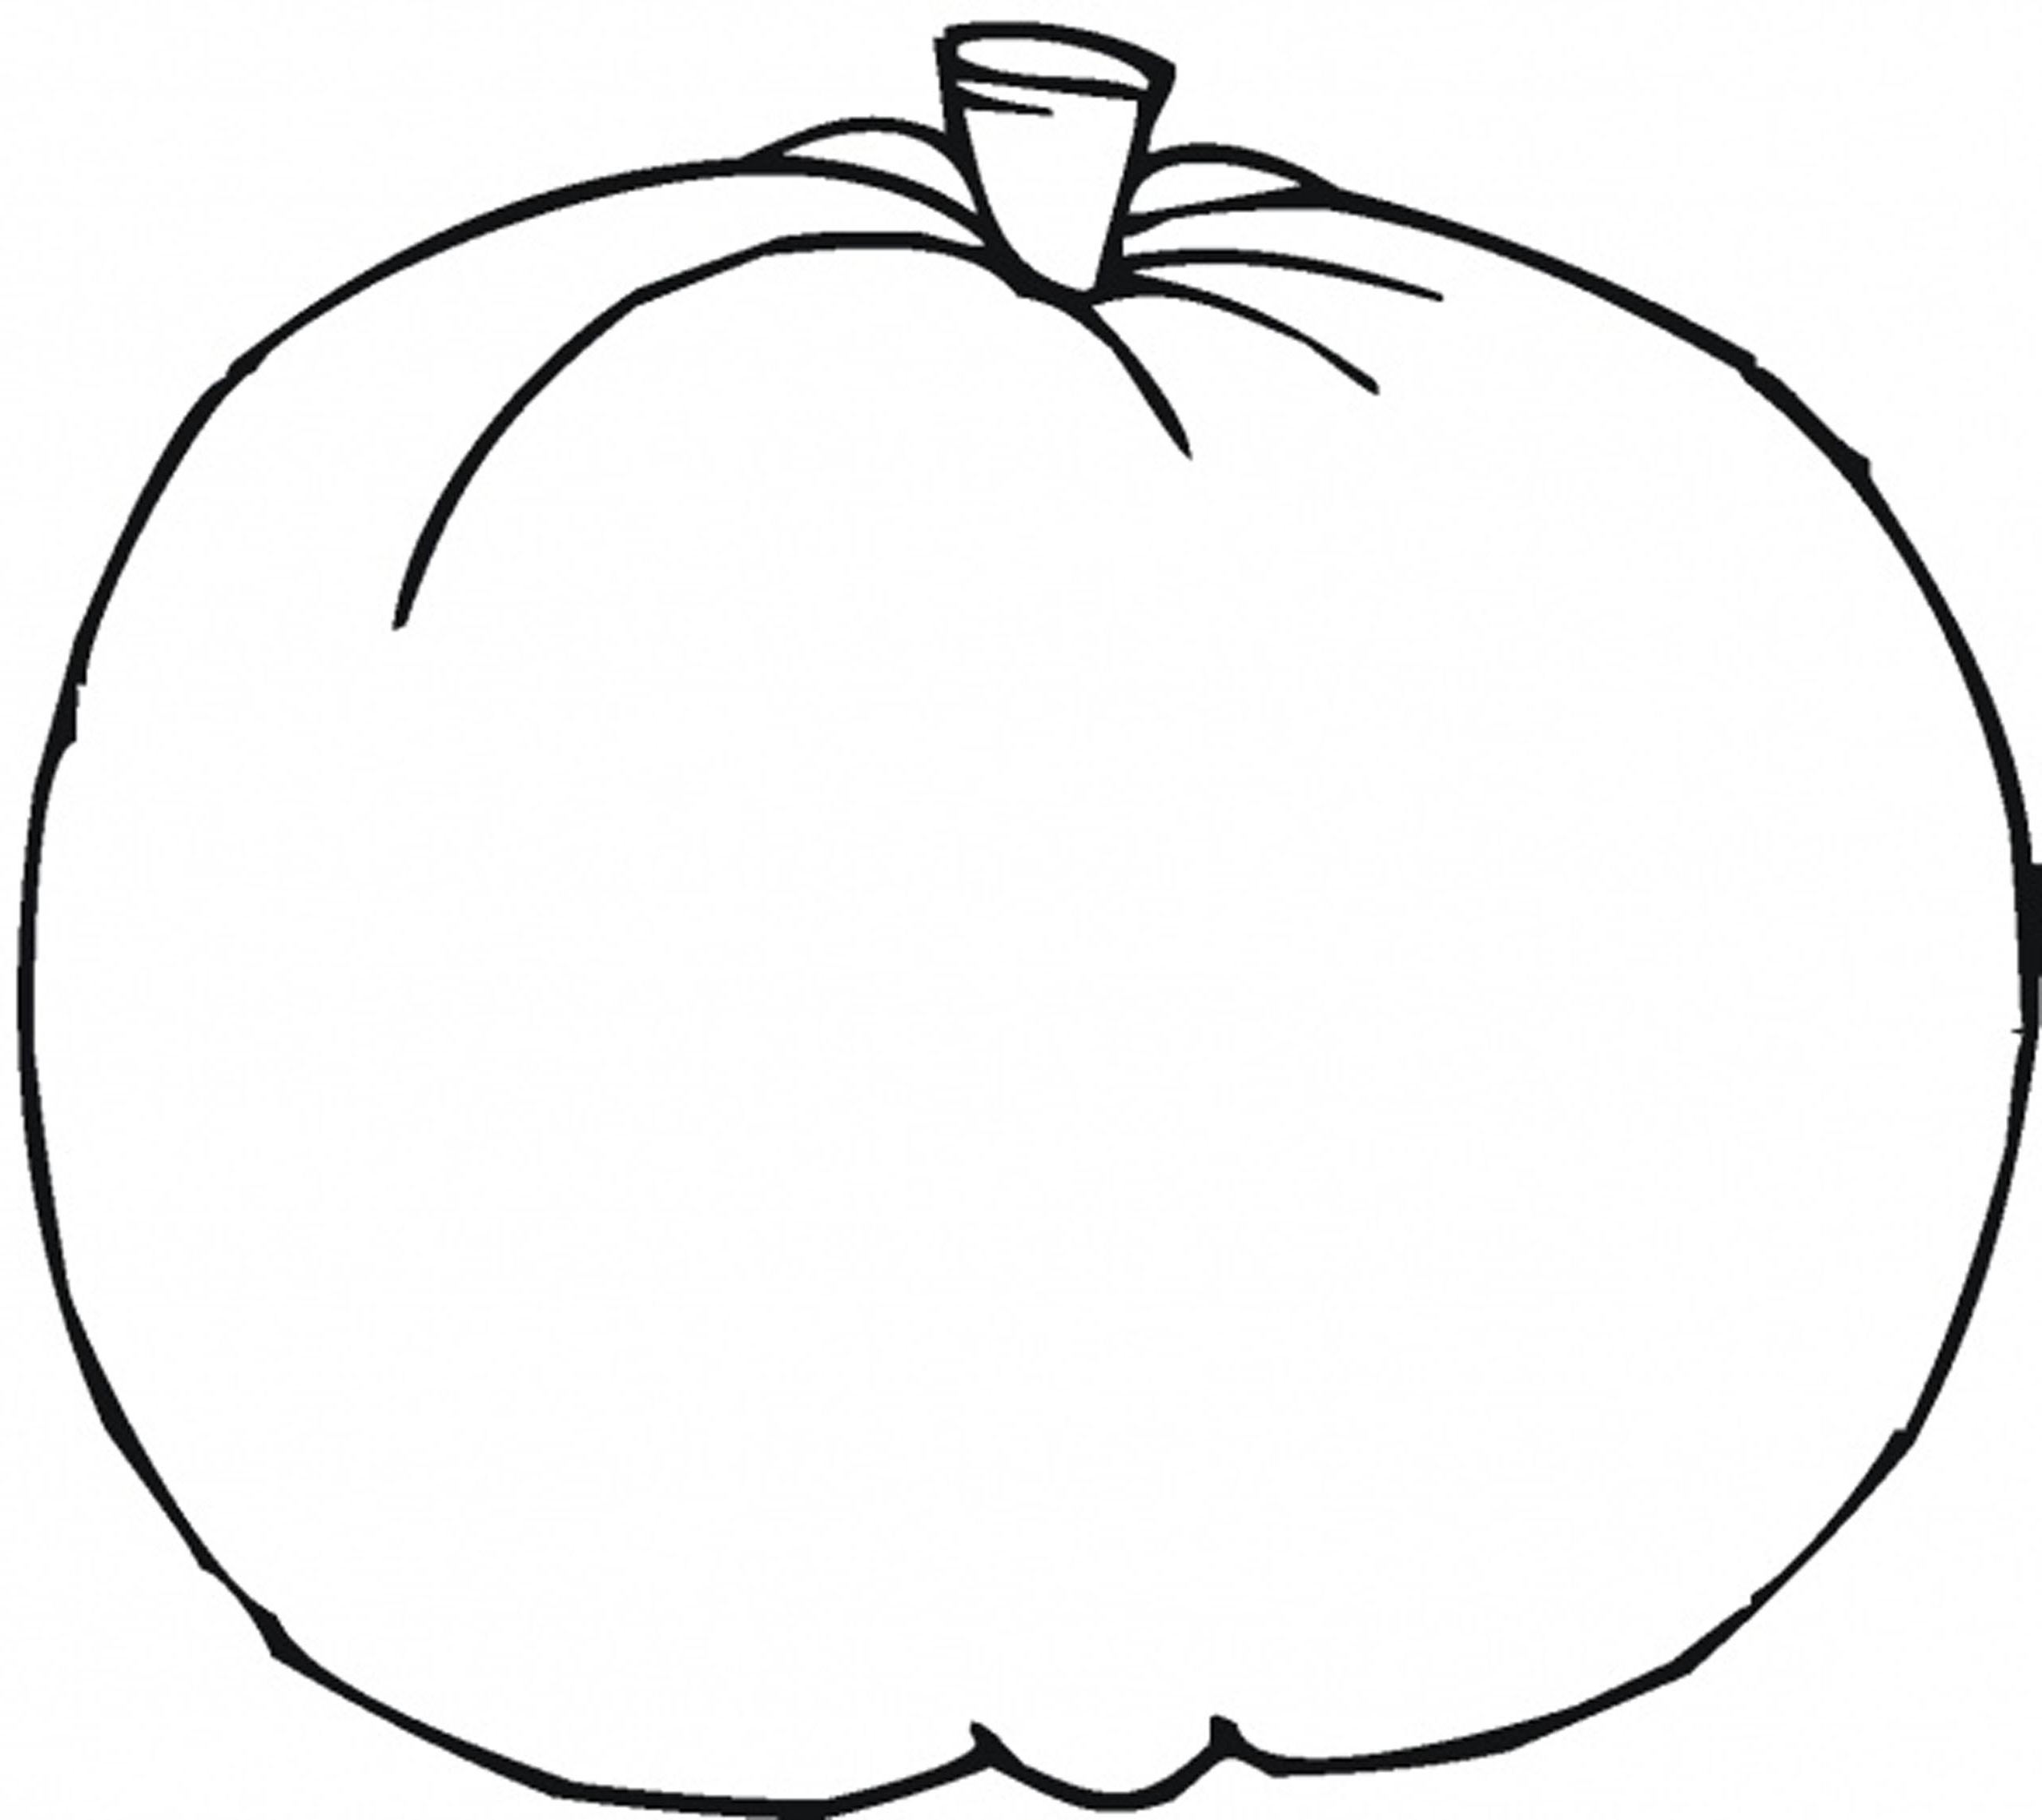 Pumpkin Template Drawing at GetDrawings.com | Free for personal use ...